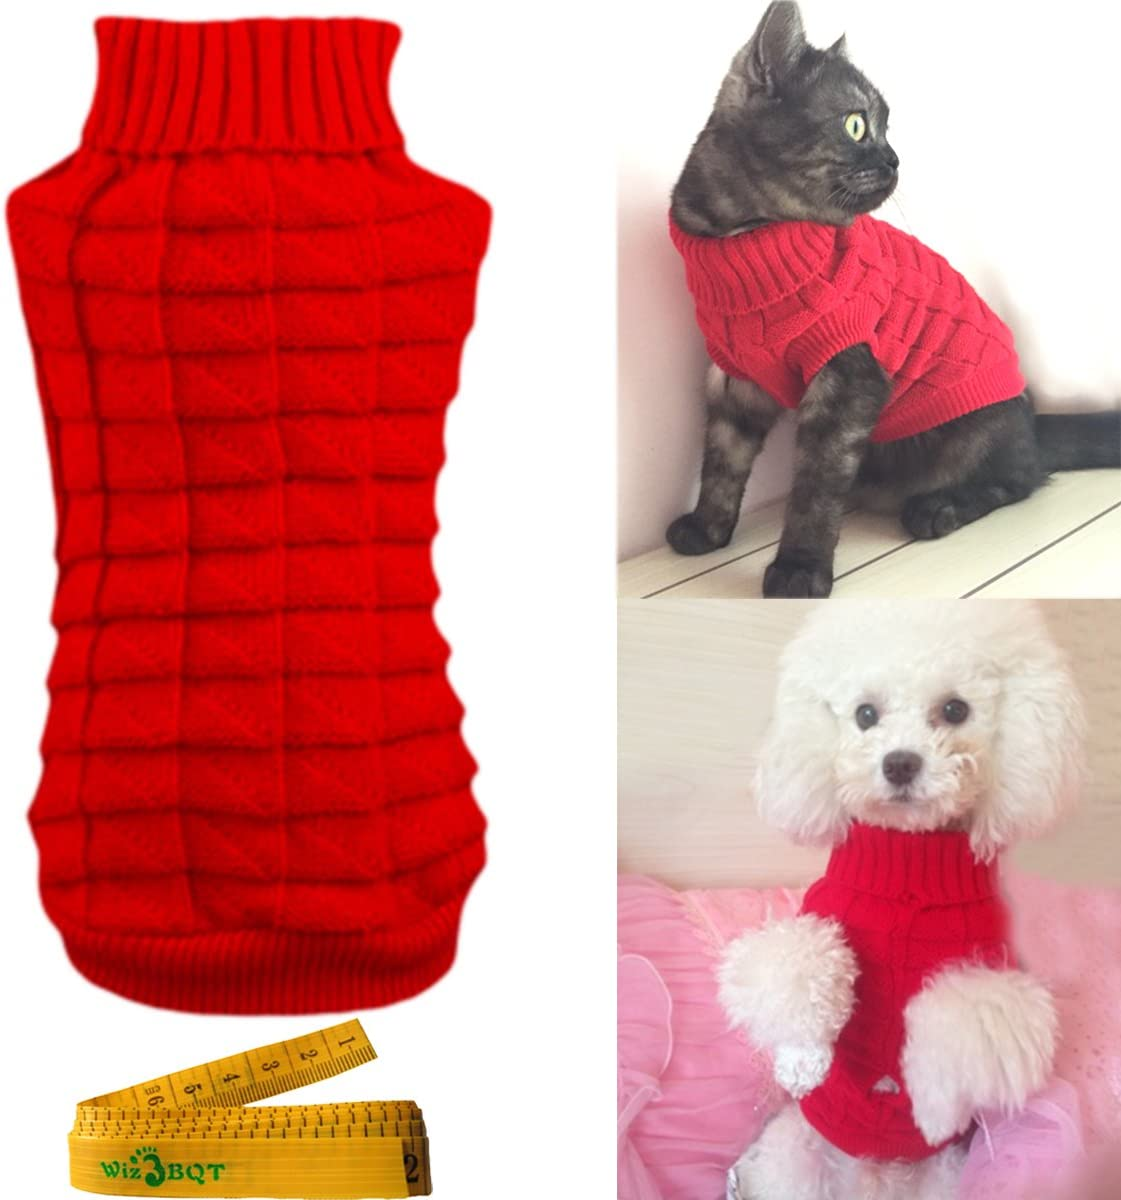 Wiz BBQT Knitted Braid Plait Turtleneck Sweater Knitwear Outerwear for Dogs /& Cats